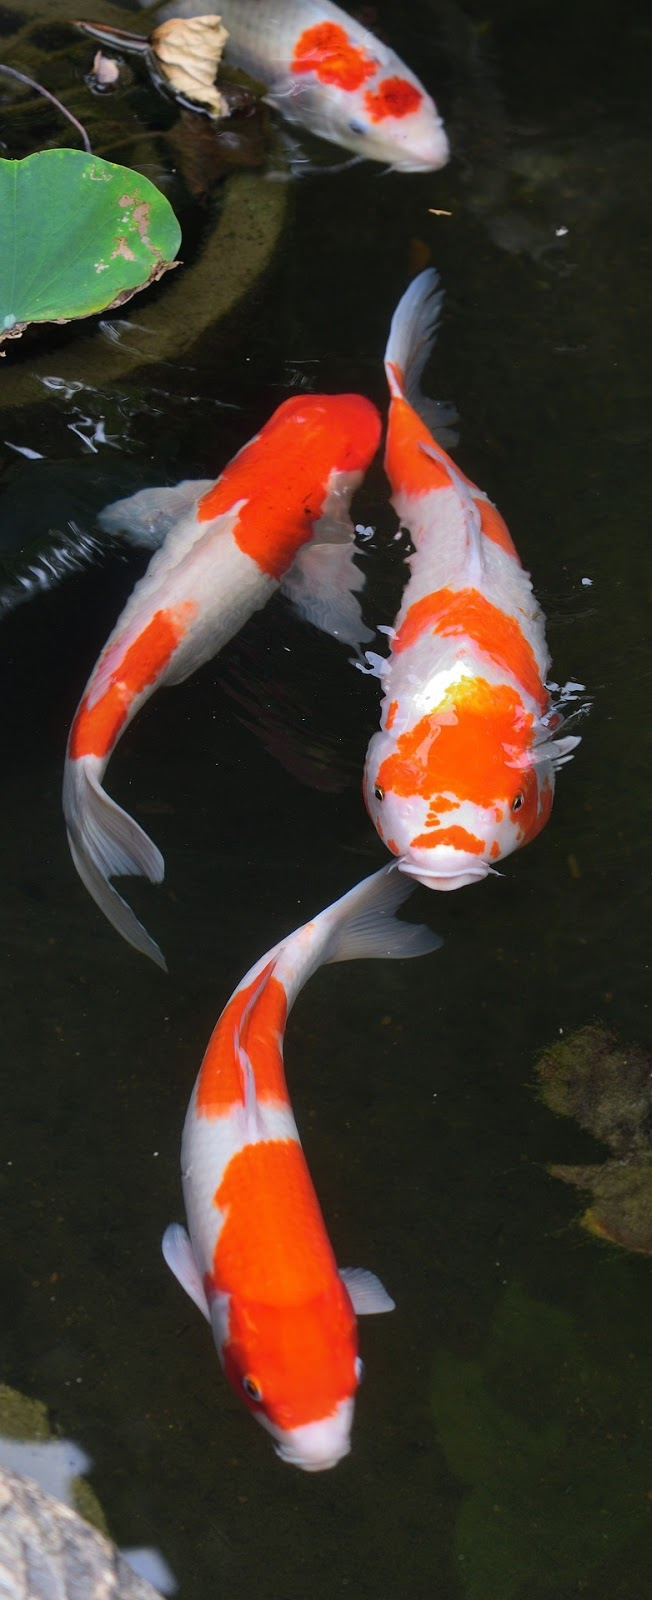 Picture of colorful koi fish at a pond.